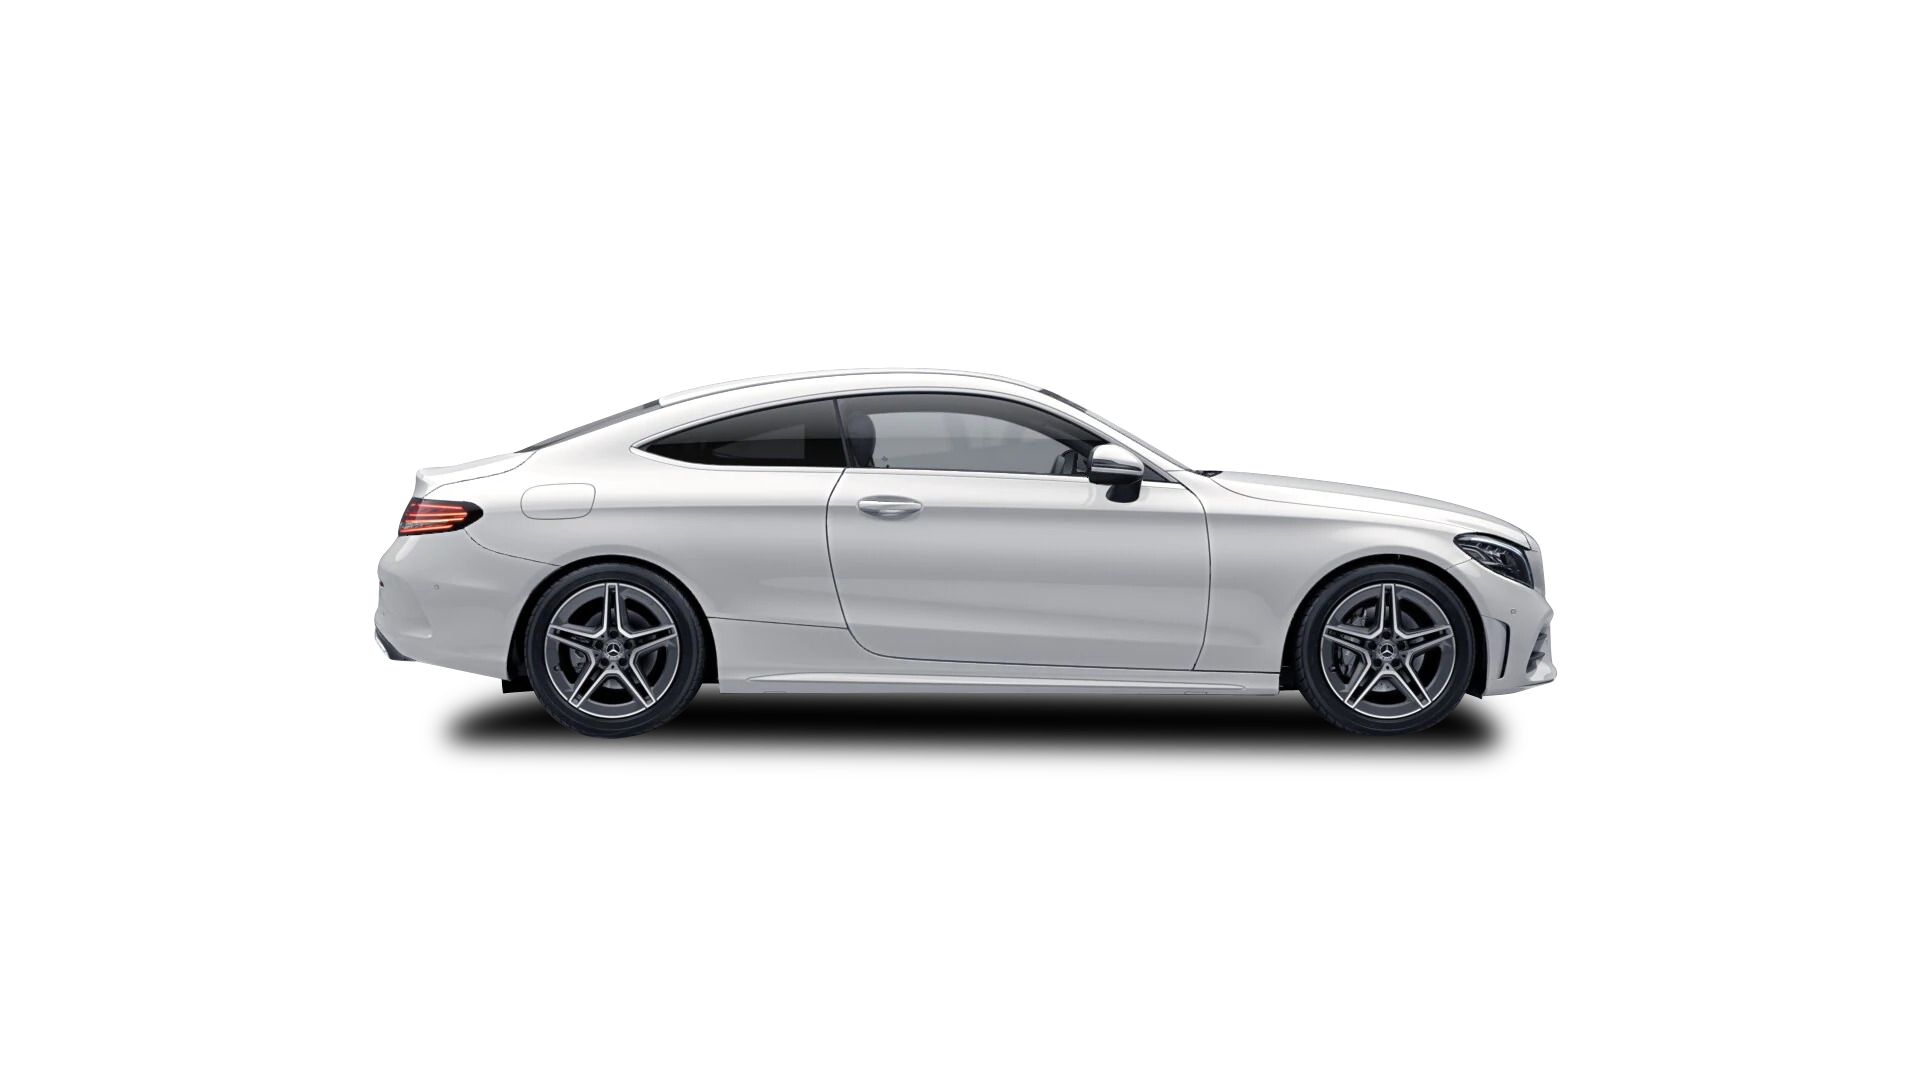 https://cogcms-images.azureedge.net/media/35288/c-class-coupe-amg-line.png